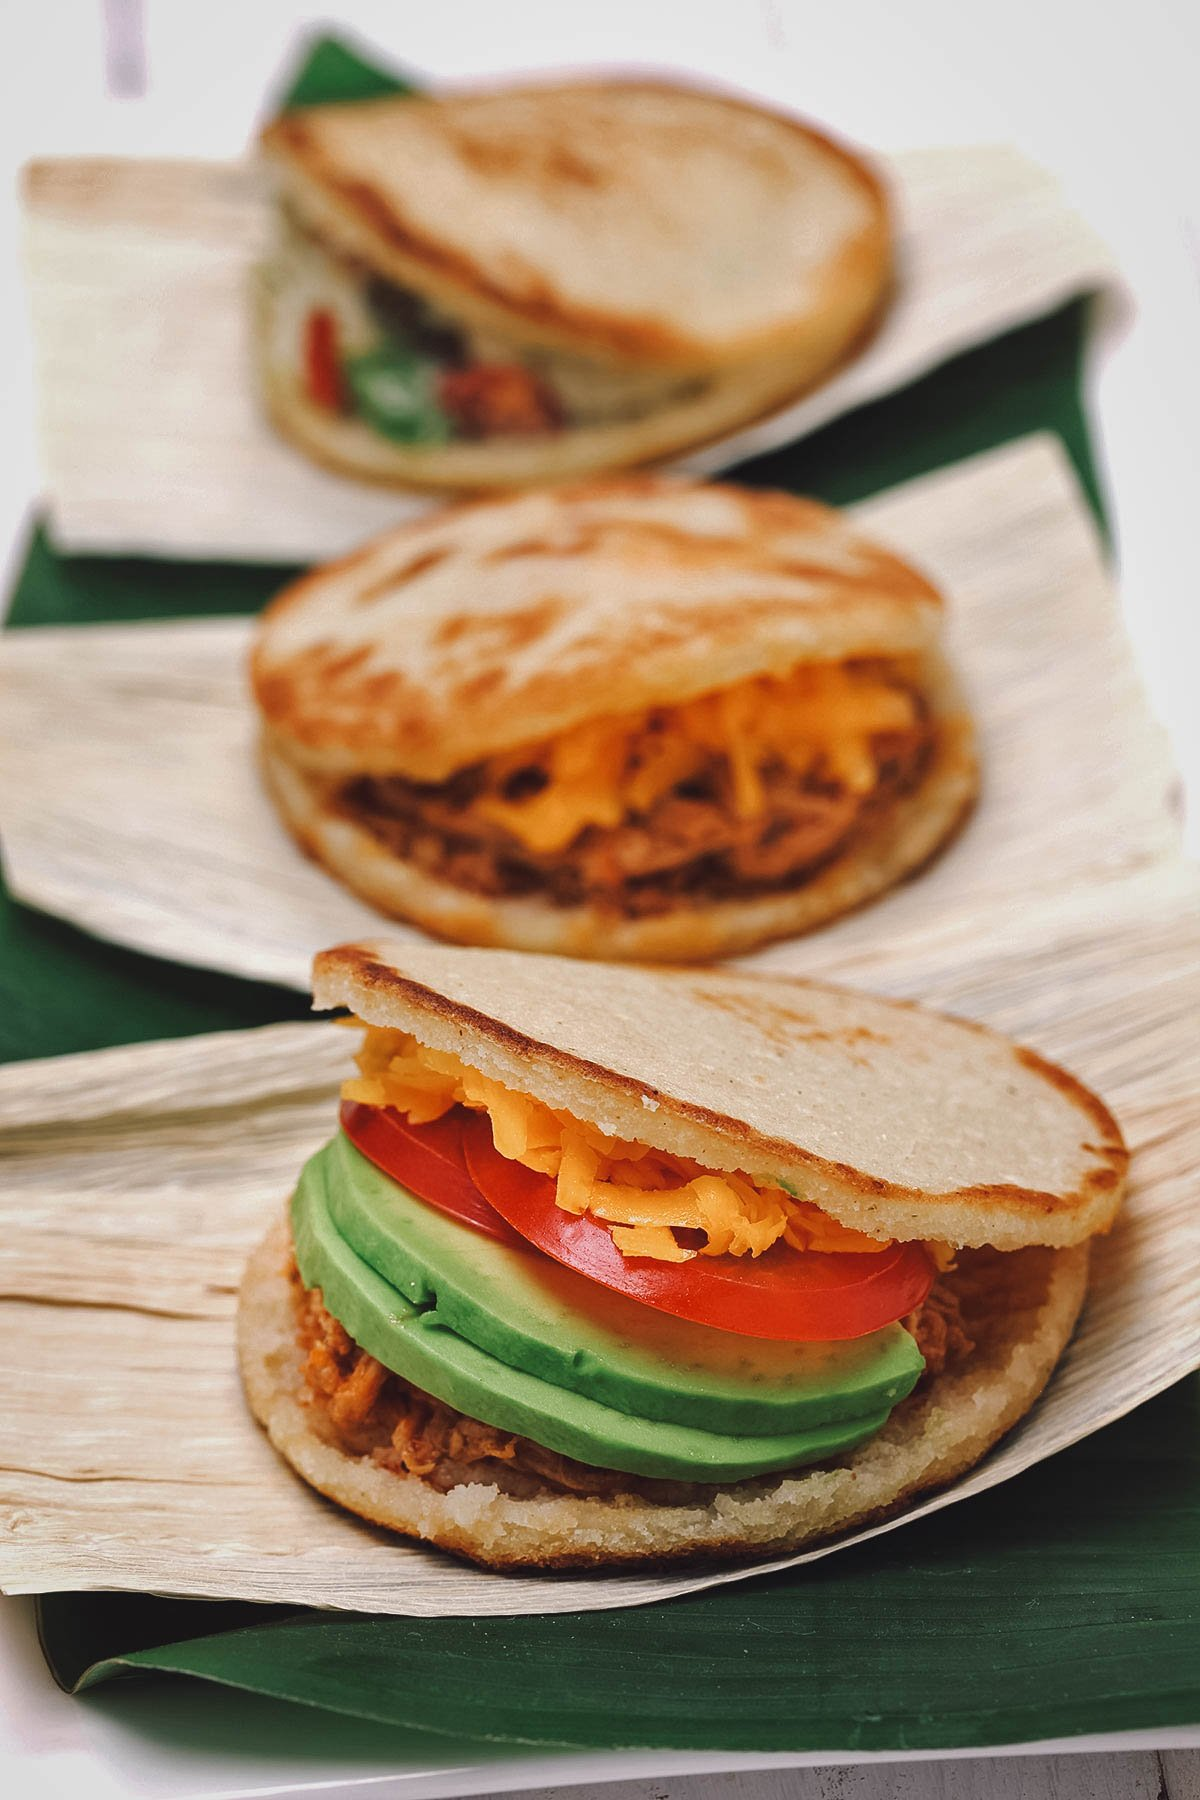 Arepas with fillings